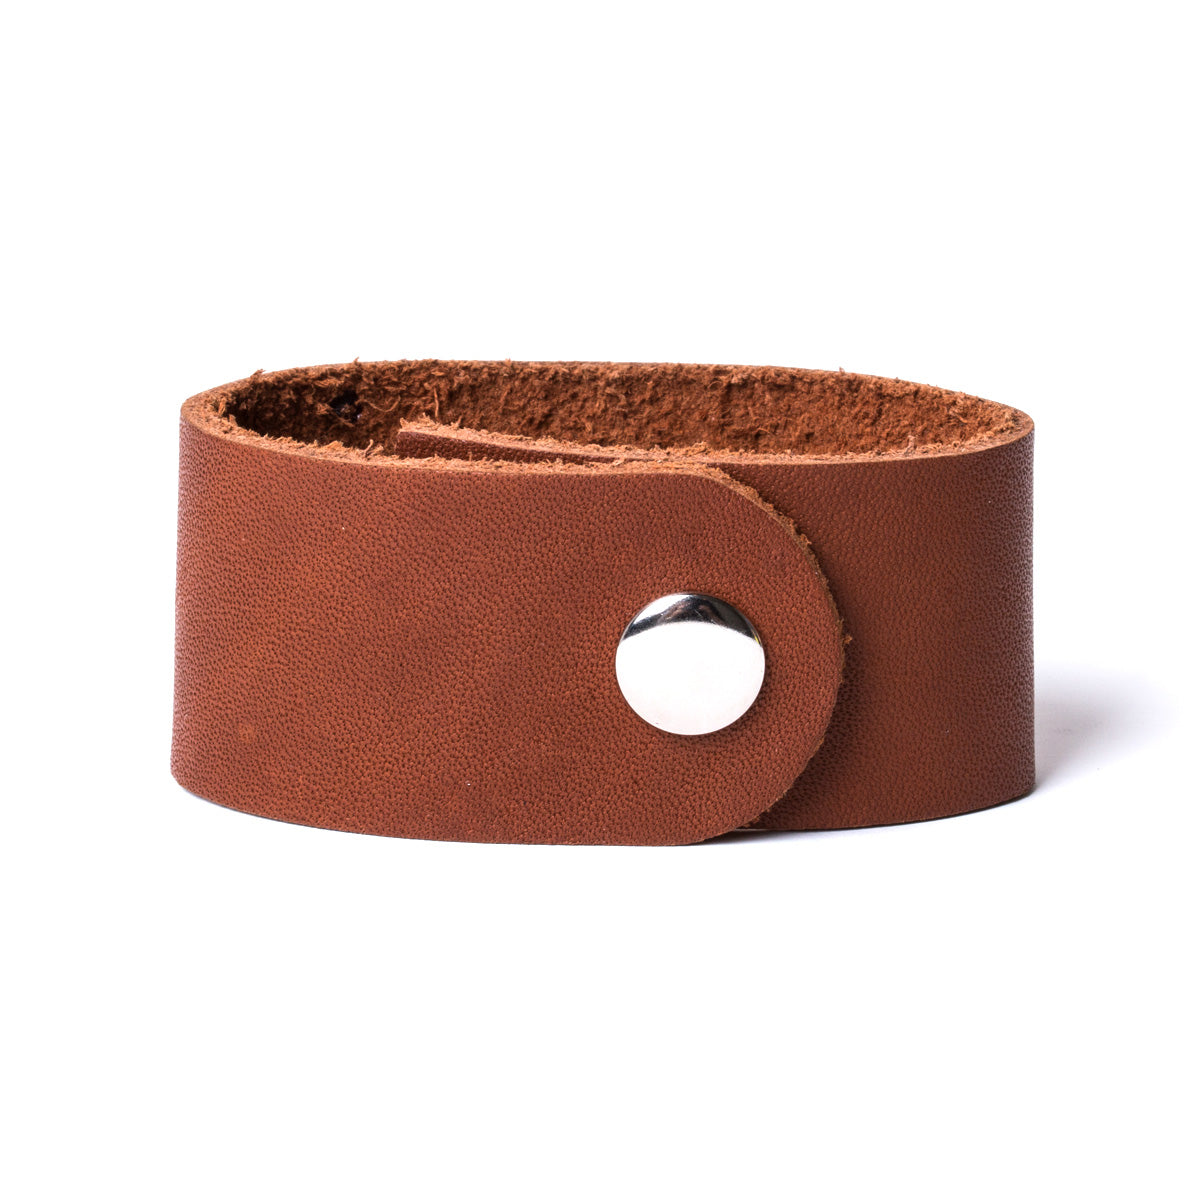 Hope Is Never Lost Thick Leather Cuff